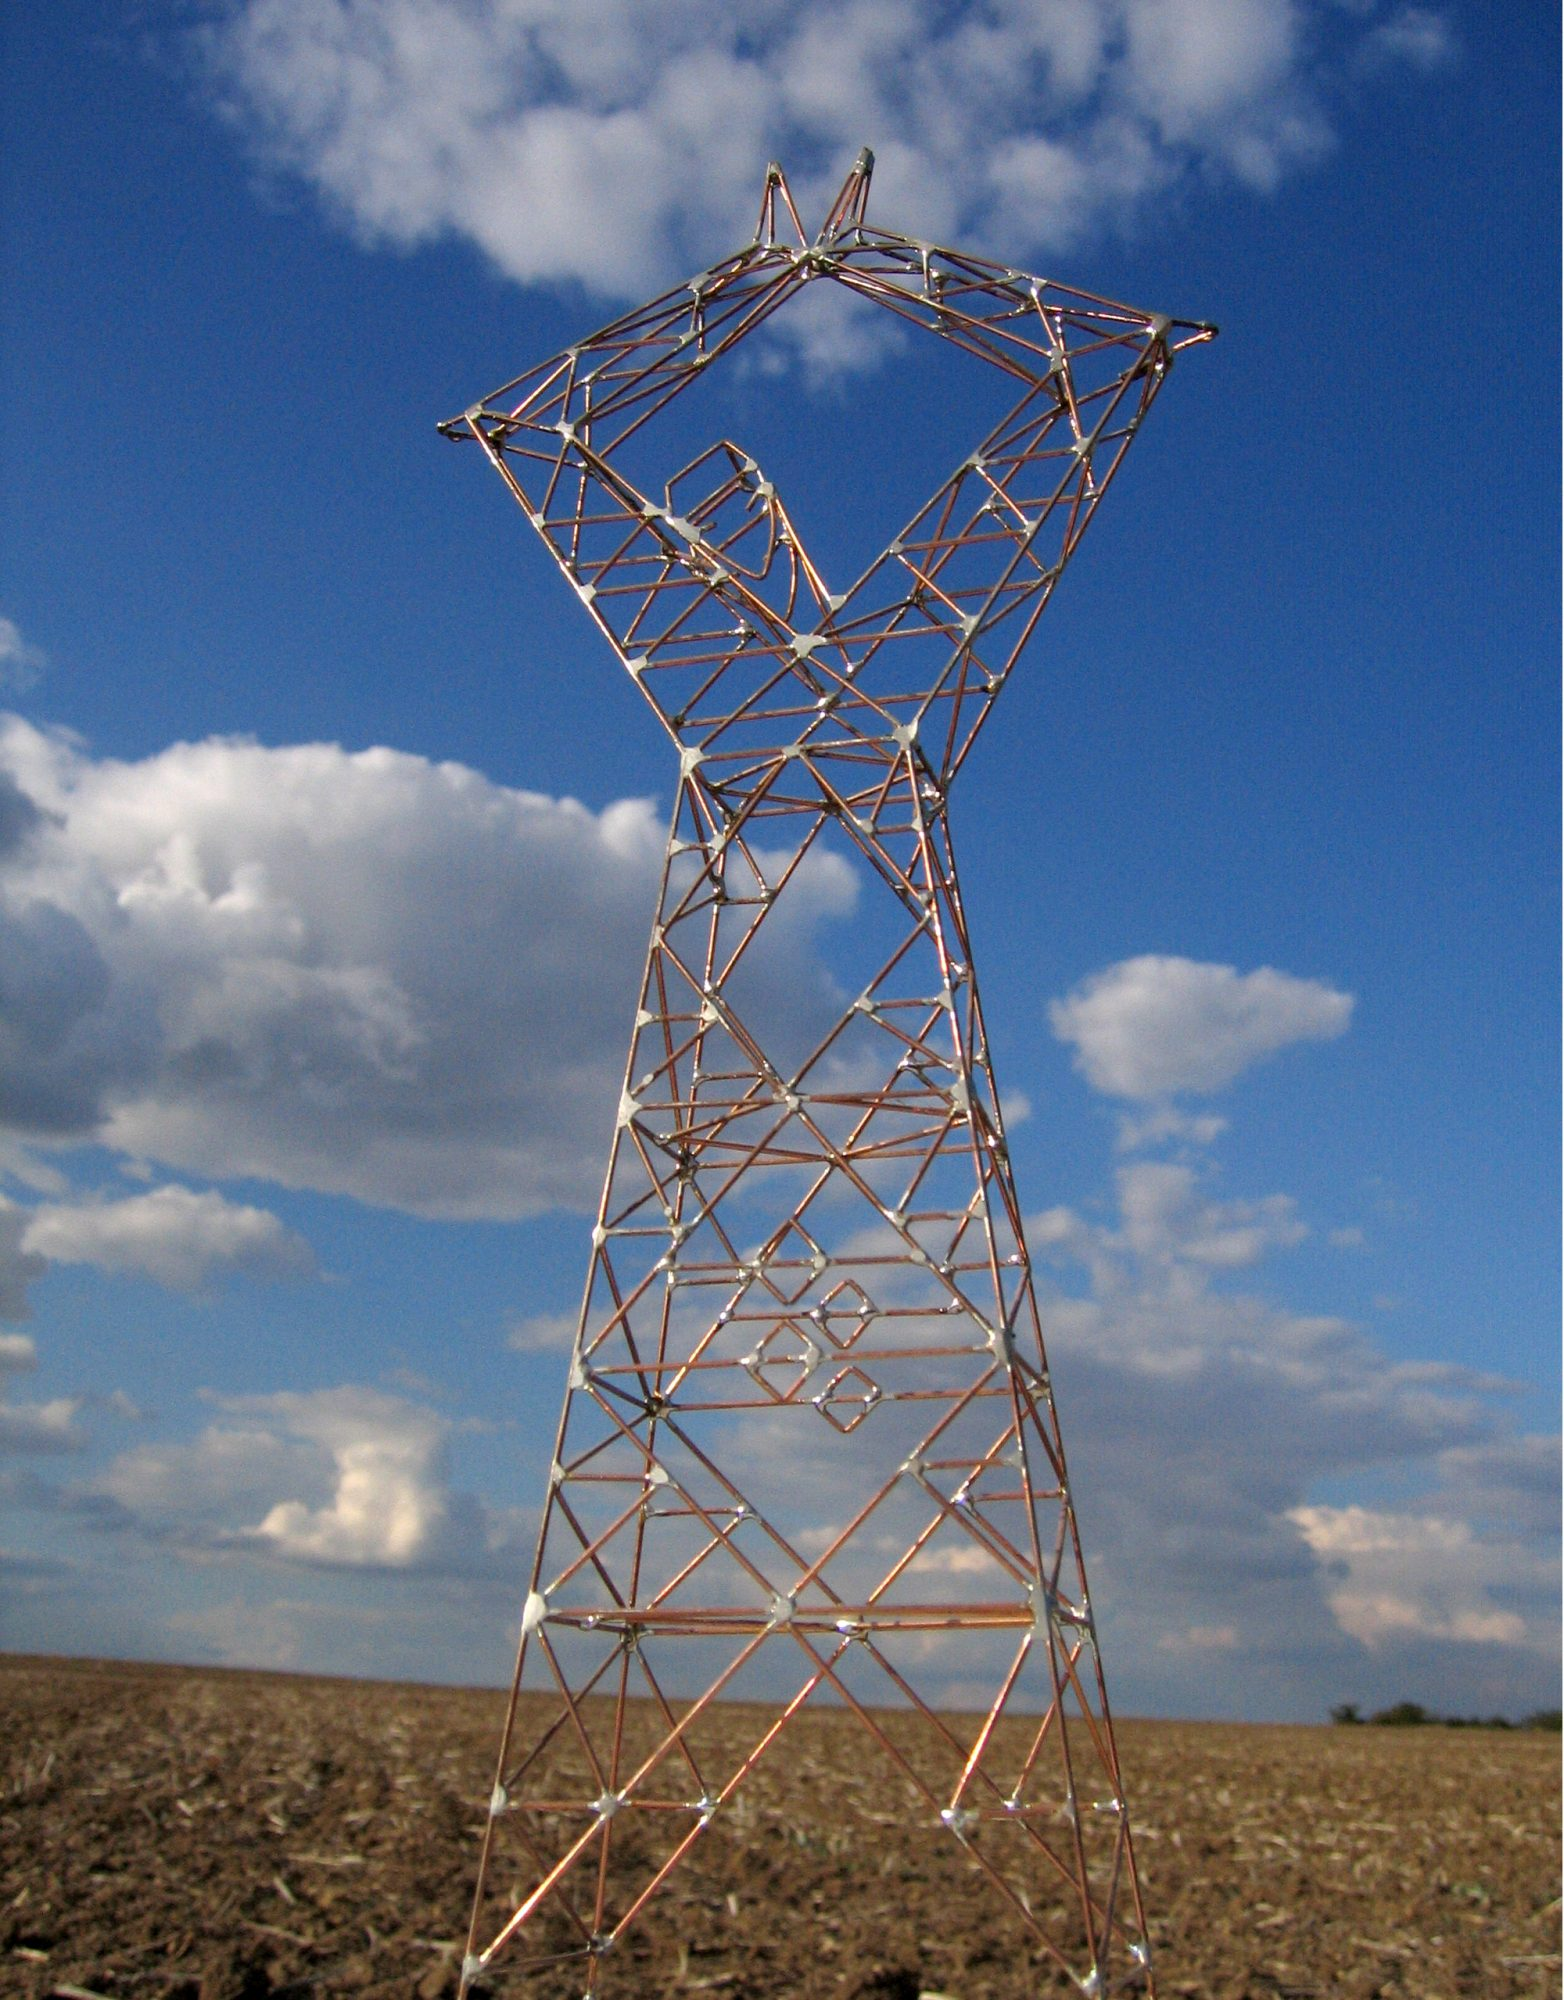 Melina, Sculpture-Pylon